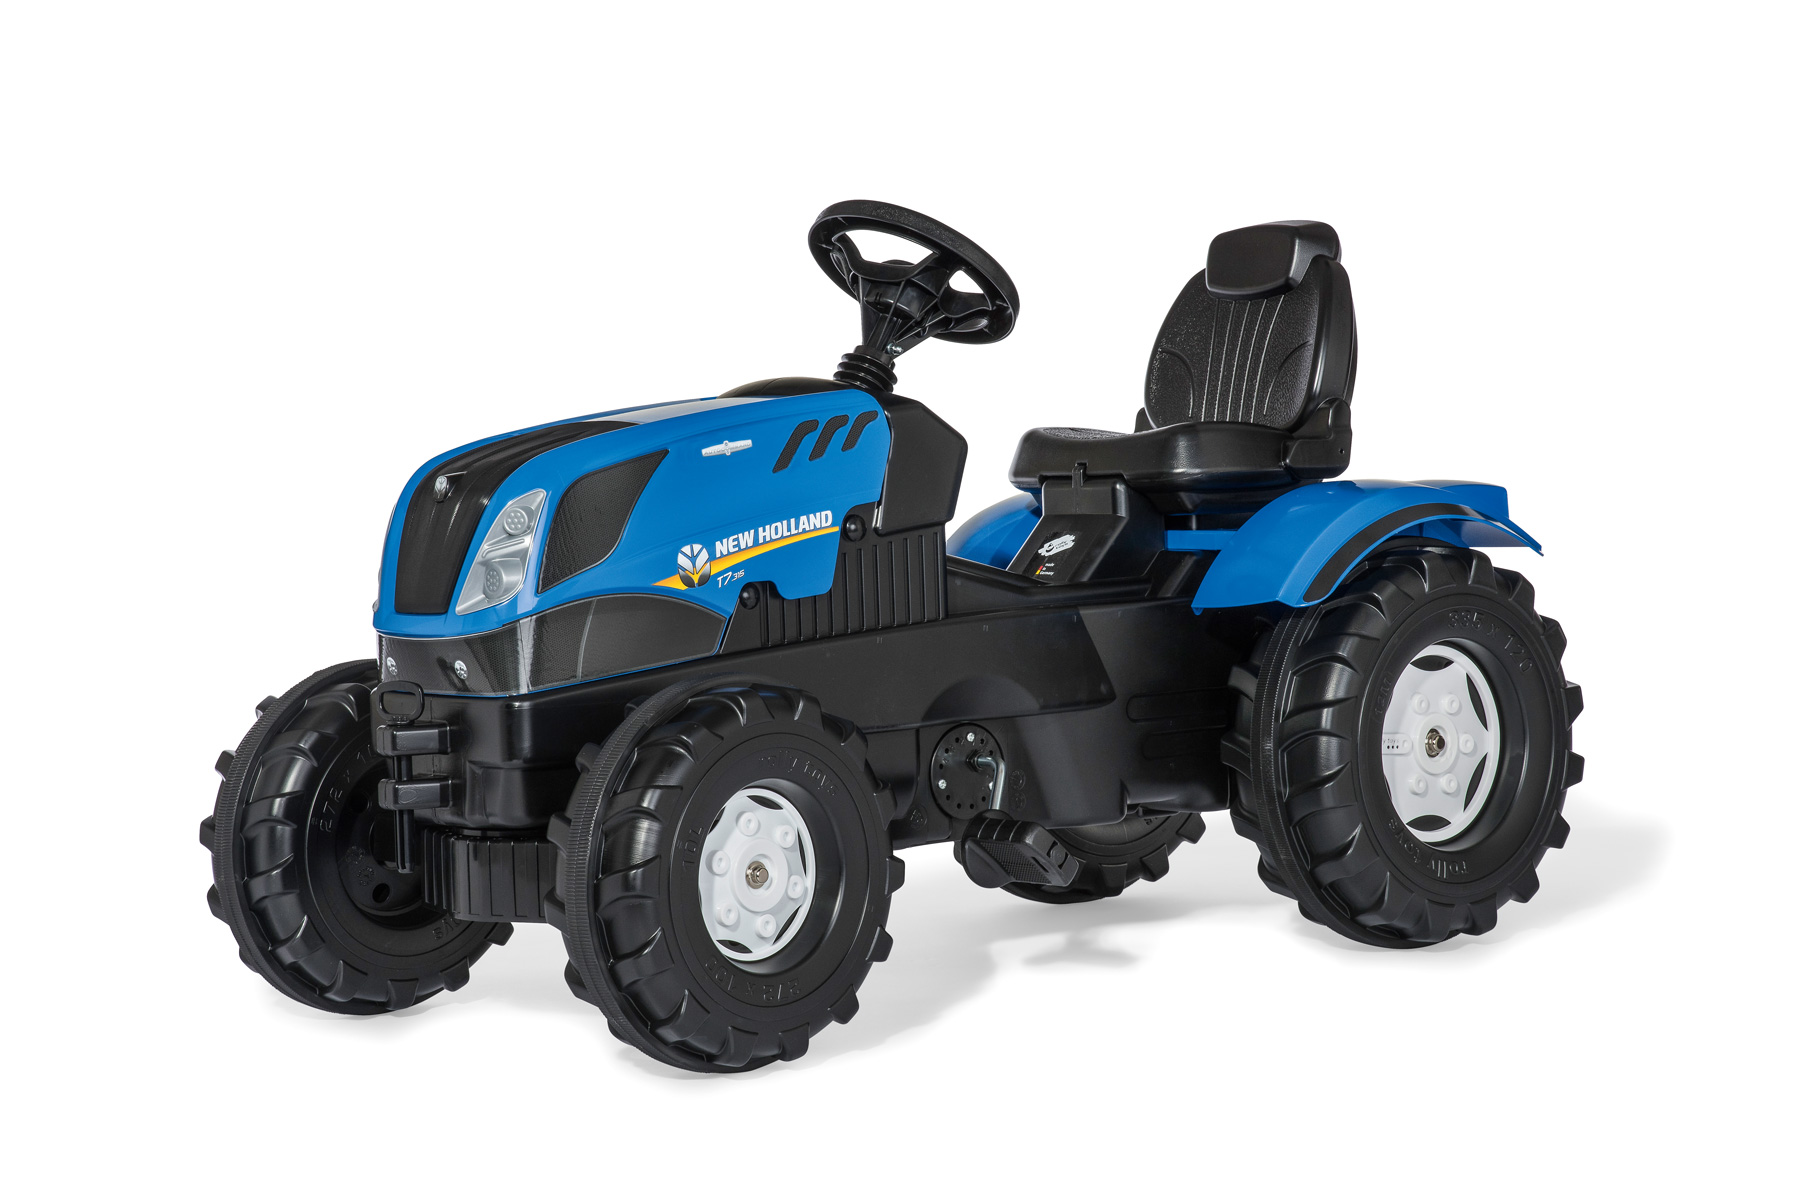 601295 New Holland T7 trattore a pedali